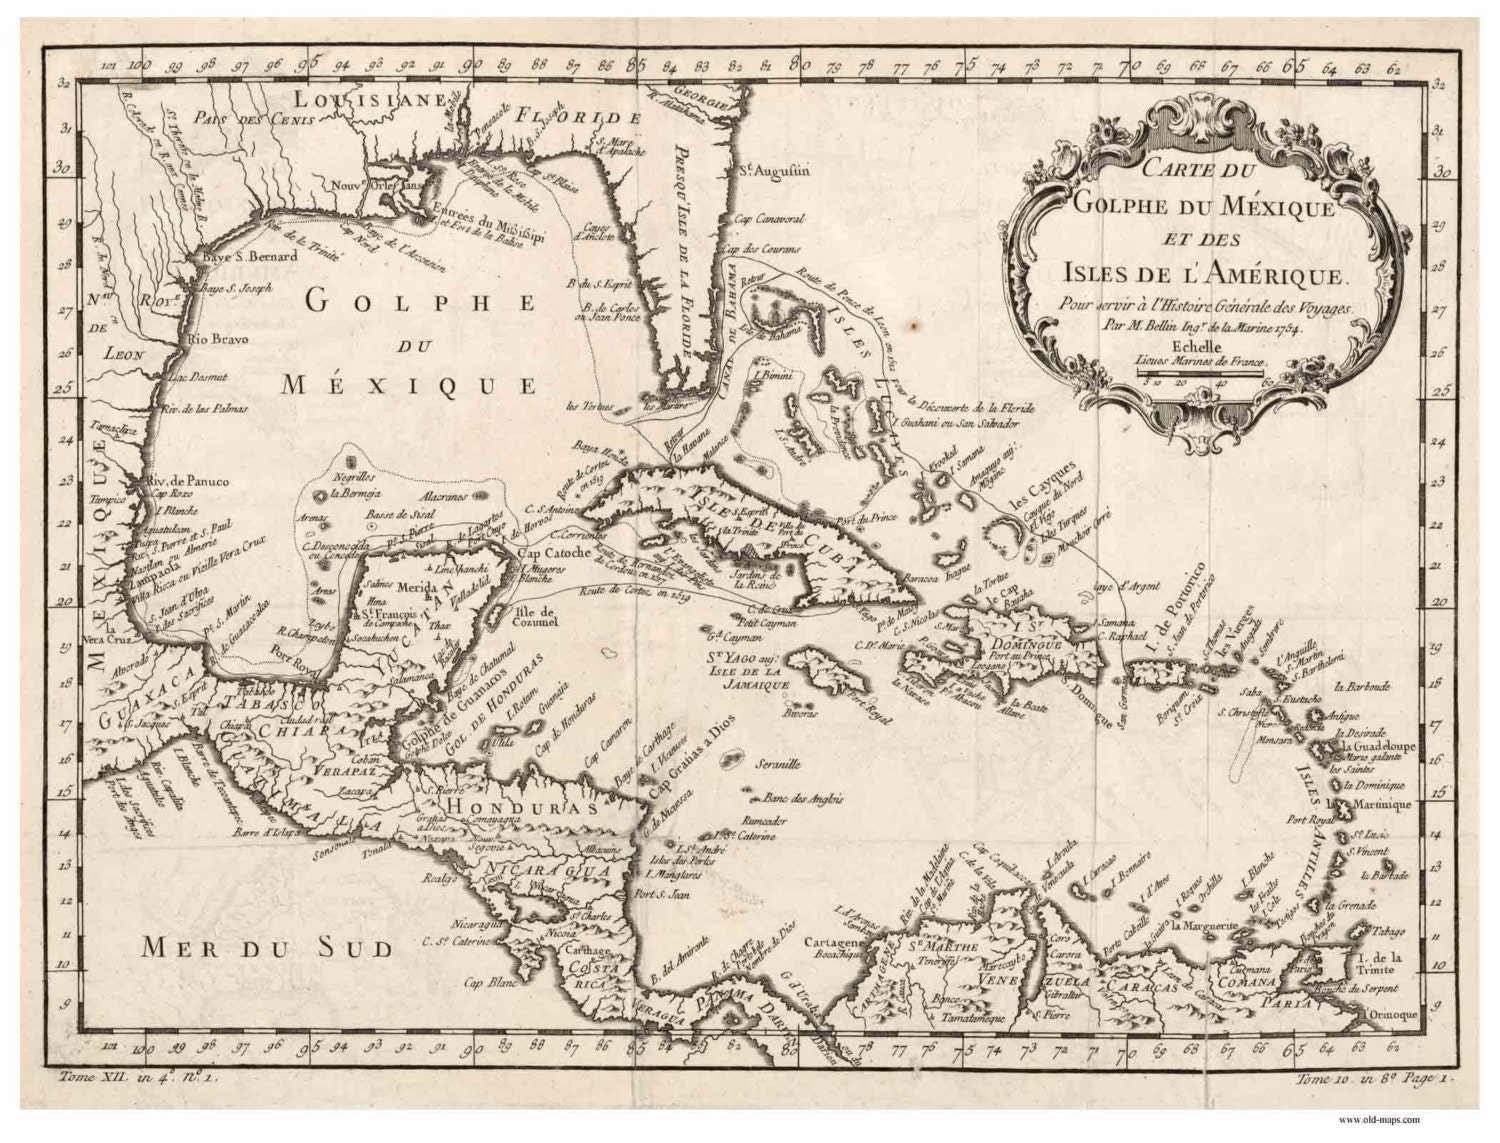 Caribbean 1754 Map by Bellin (French) - Reprint Cuba, Puerto Rico, on map of guiana, map of bahamas, map of south america, map of world, map of colombia, map of nicaragua, map of honduras, map of ecuador, map of canada, map of aruba, map of switzerland, map of puerto rico, map of romania, map of paraguay, map of yemen, map of caracas, map of bolivia, map of greece, map of bonaire,